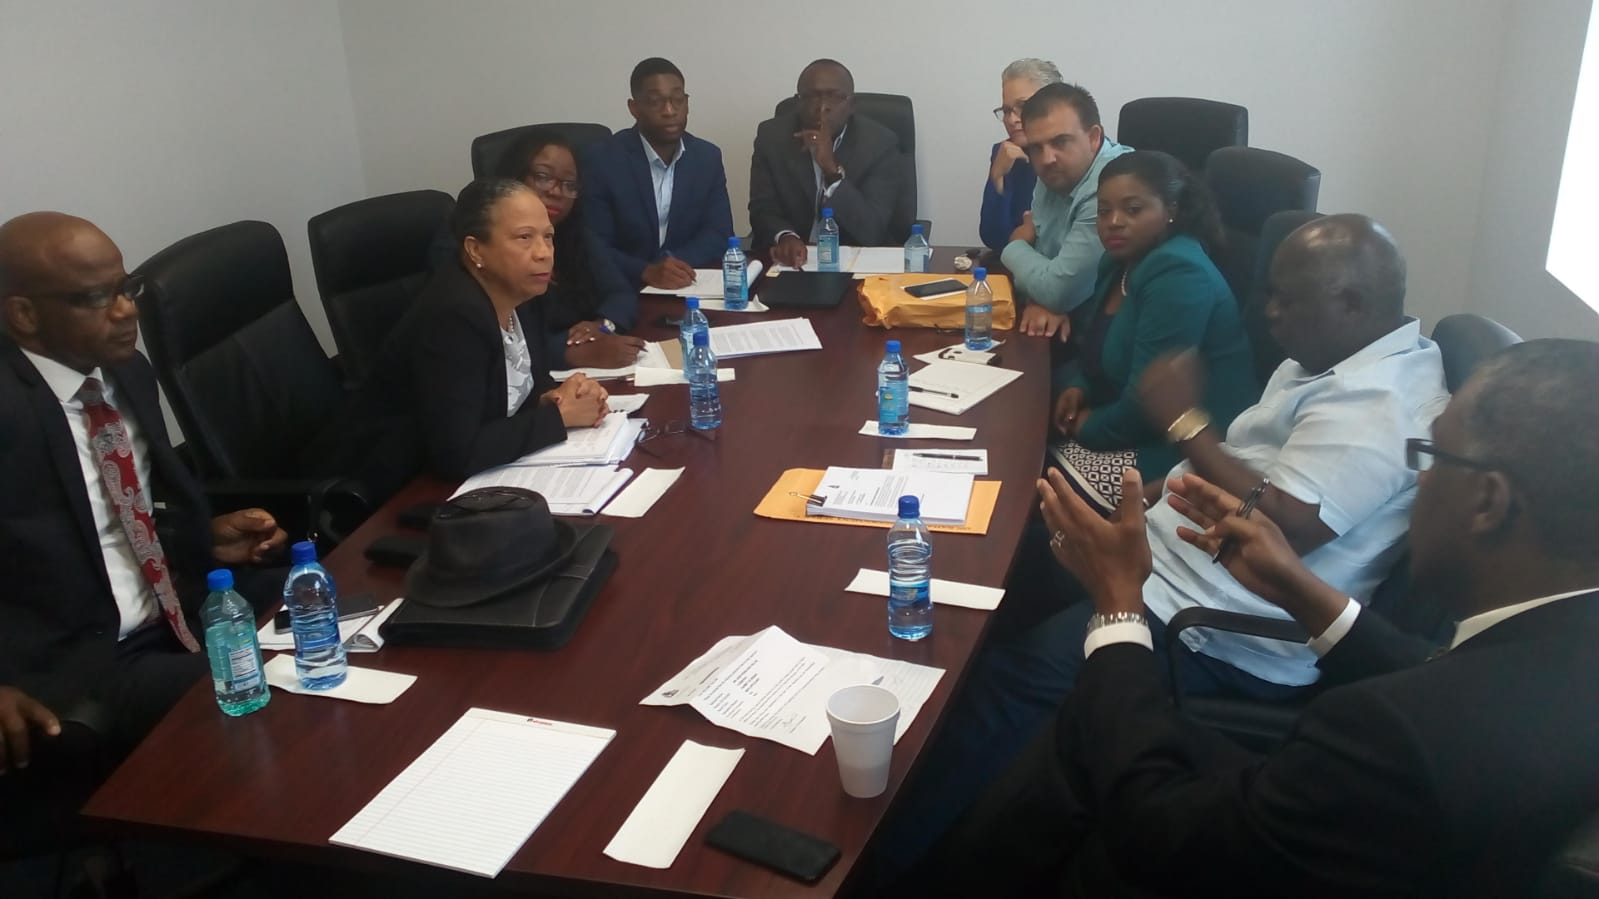 Law Reform Commissioner consults with PLP on the proposed Nationality, Immigration and Asylum Bill